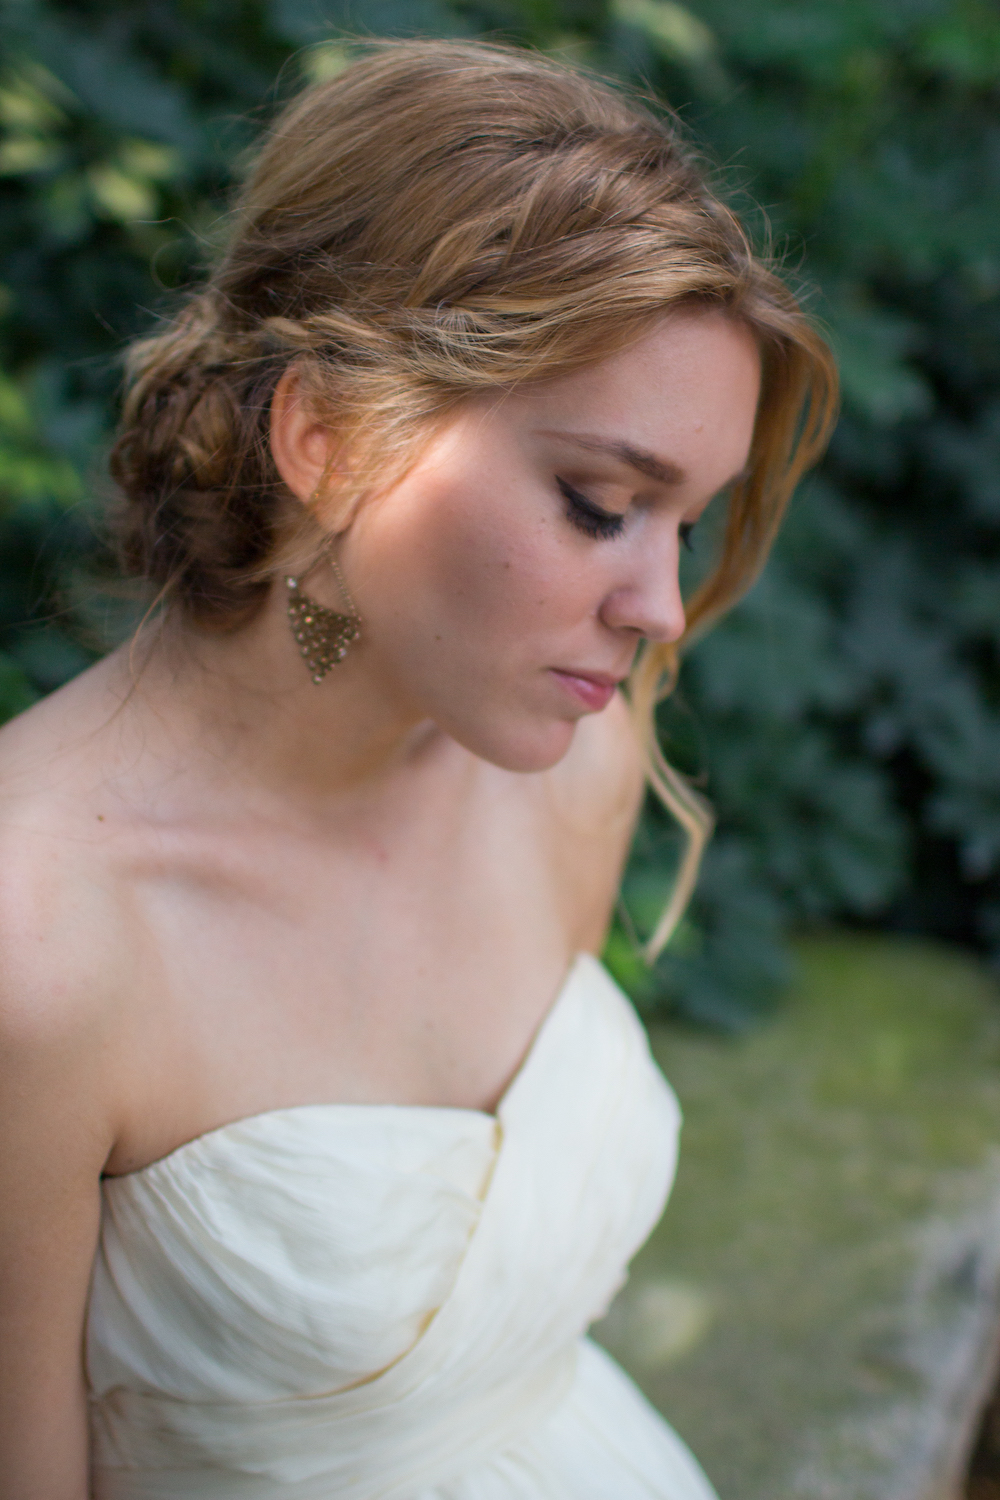 A romantic bridal inspiration styled shoot with a pretty braided hairstyle / photo by Spark Photography